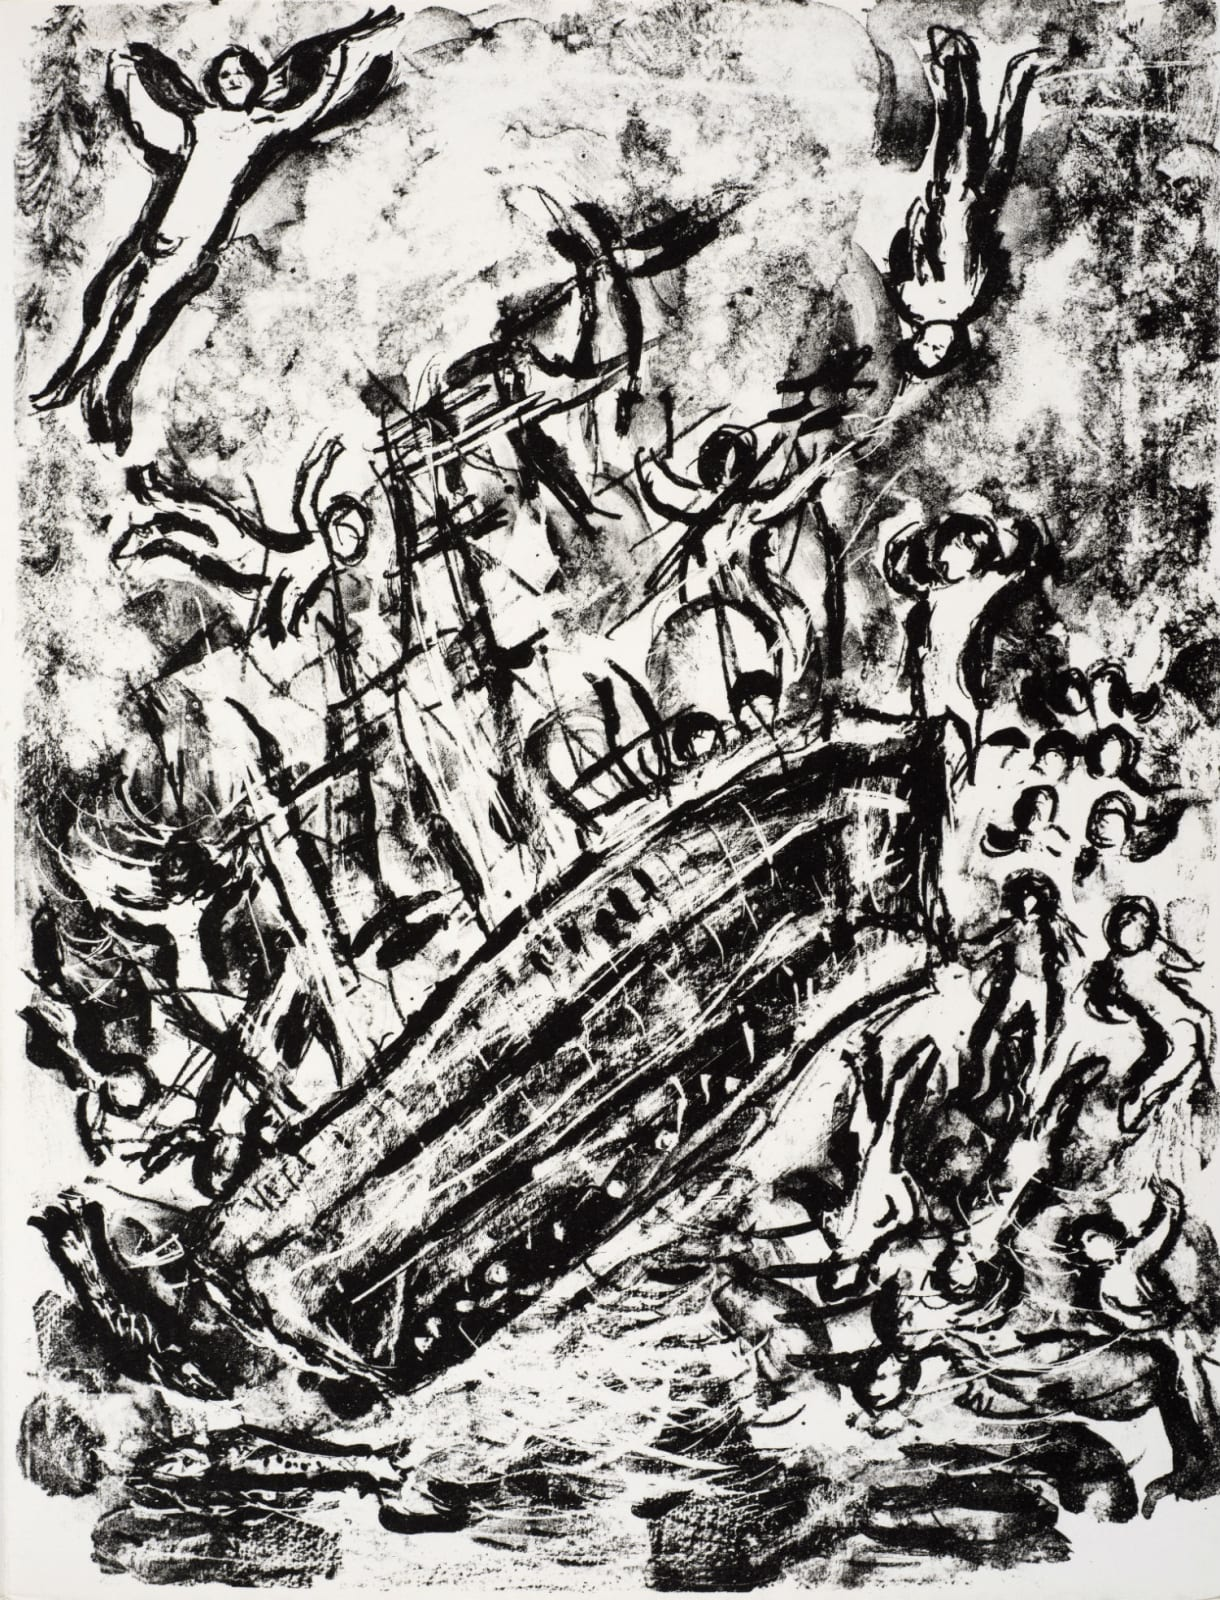 Marc Chagall (1887-1985) The Ship lists and the Passengers are panic-stricken (Series: Shakespeare The Tempest) 1975 Lithograph 42.5 x 32.5 cm Ben Uri Collection © Marc Chagall estate To see and discover more about this artist click here